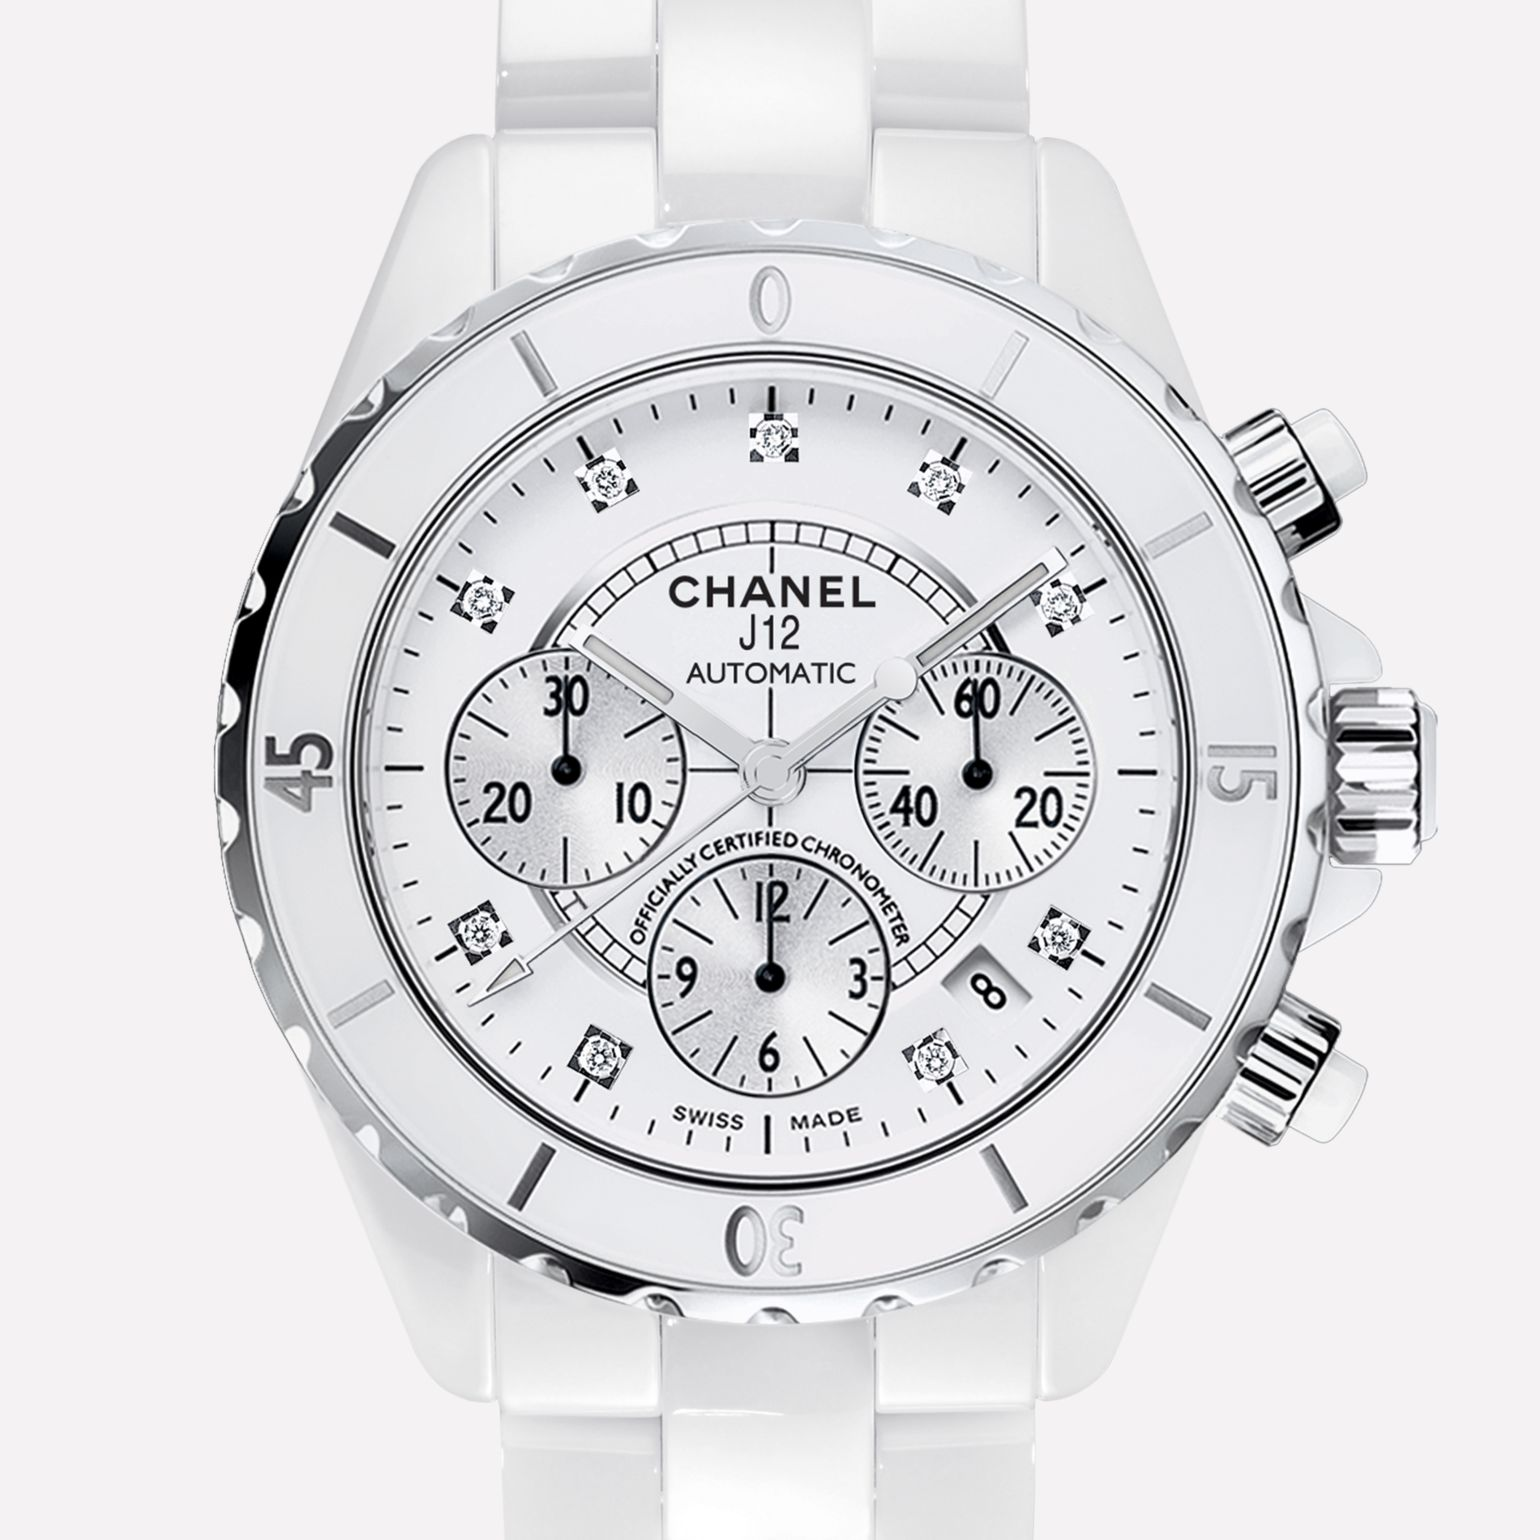 J12 CHRONOGRAPHE Watch White ceramic and steel, diamond indicators